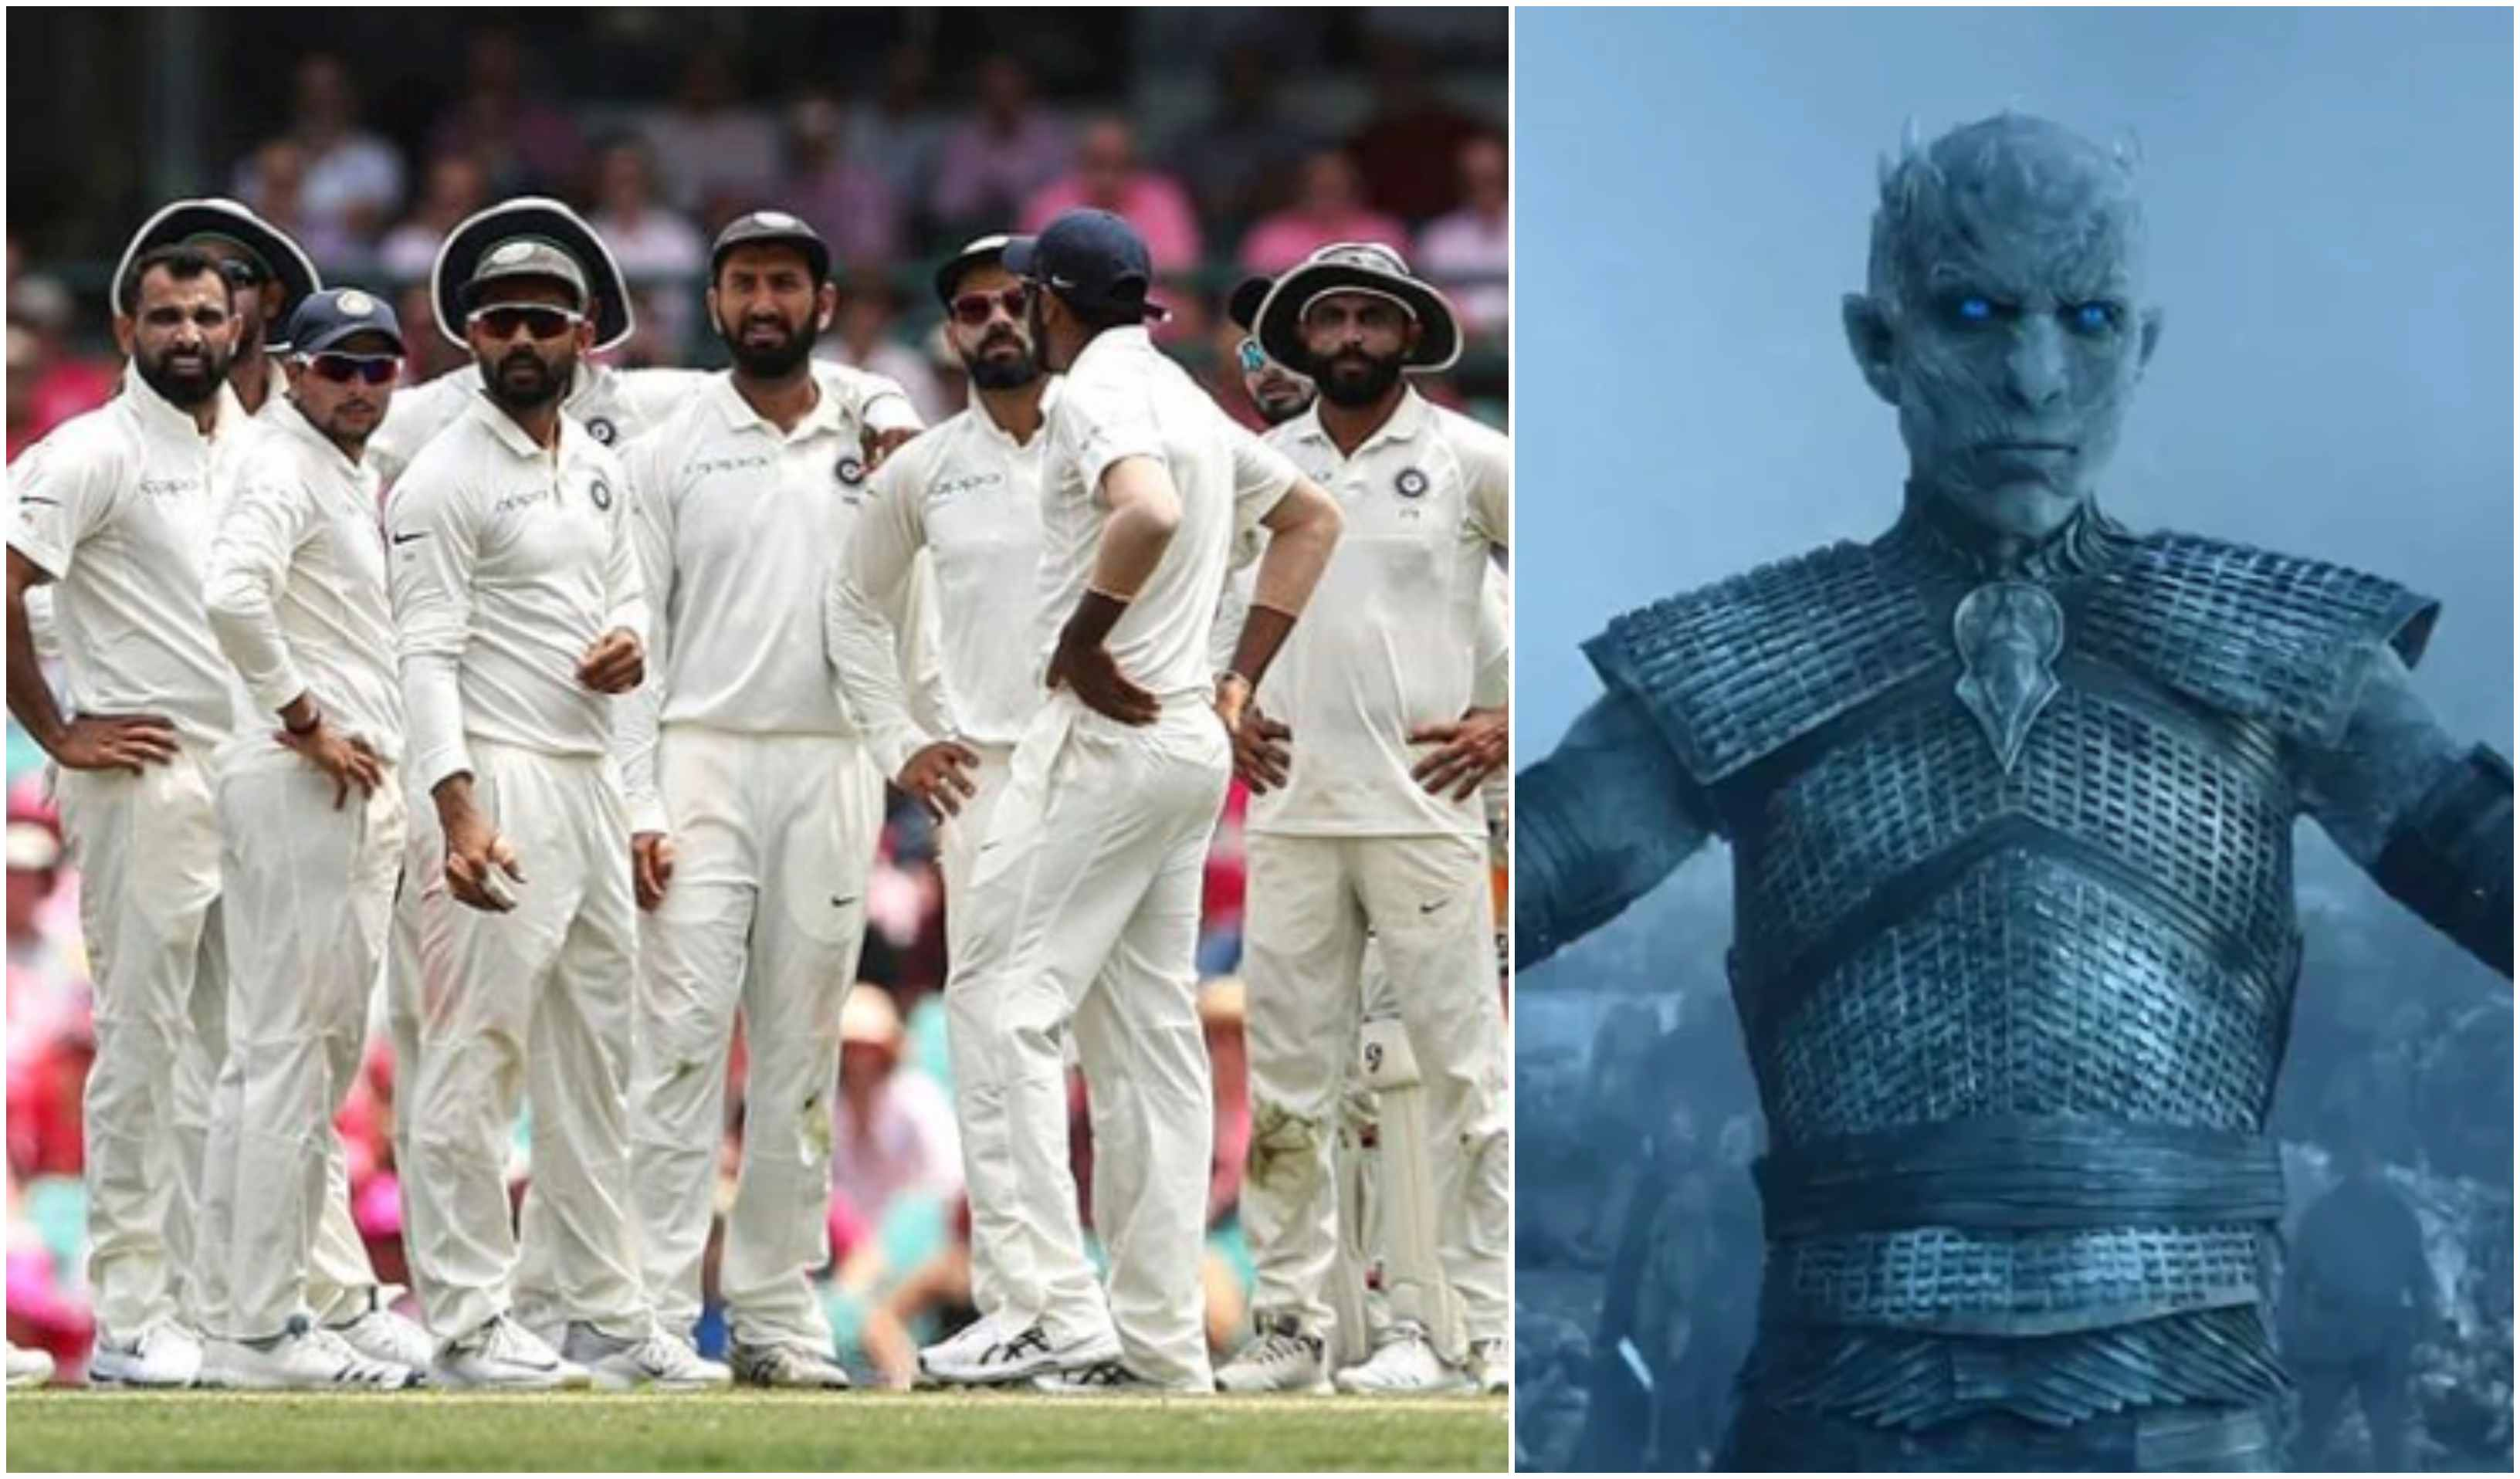 Cheteshwar Pujara, While Walker, Game of Thrones, Cricket, R Ashwin, NewsMobile, Mobile, News, India